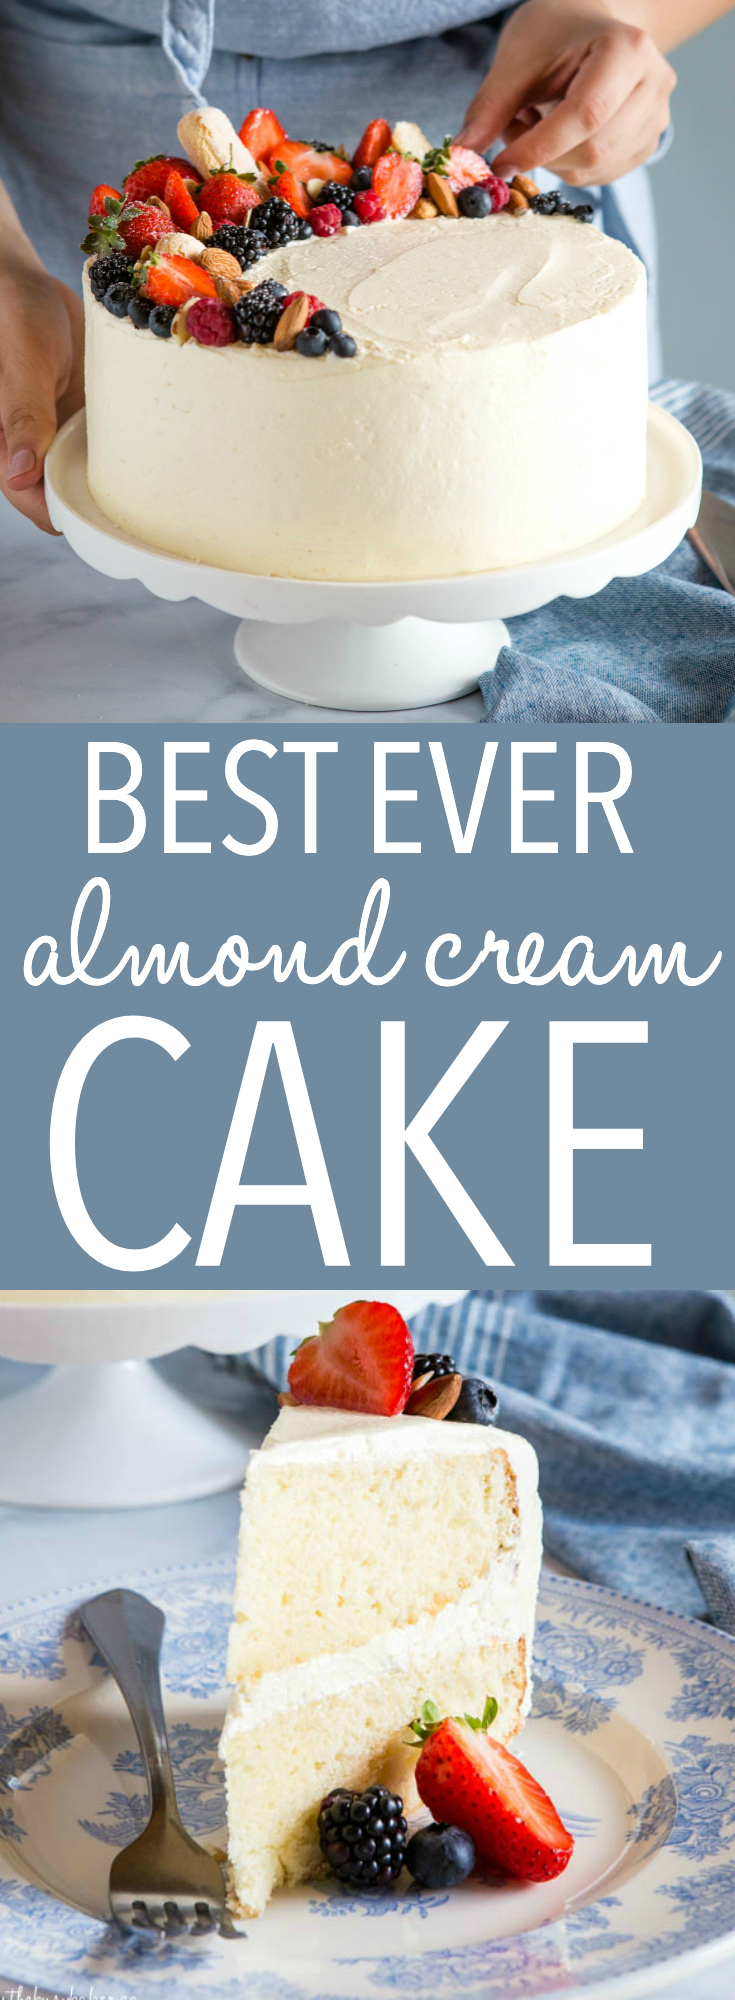 This Best Ever Almond Cream Cake is the perfect cake recipe for birthdays, holidays, or any celebration! A deliciously moist cake with the fluffiest and creamiest almond frosting you'll ever taste! Recipe from thebusybaker.ca! #almond #cake #creamy #frosting #fruit #fruitcake #birthday #celebration #christmas #holiday #buttercream #cakedecorating via @busybakerblog